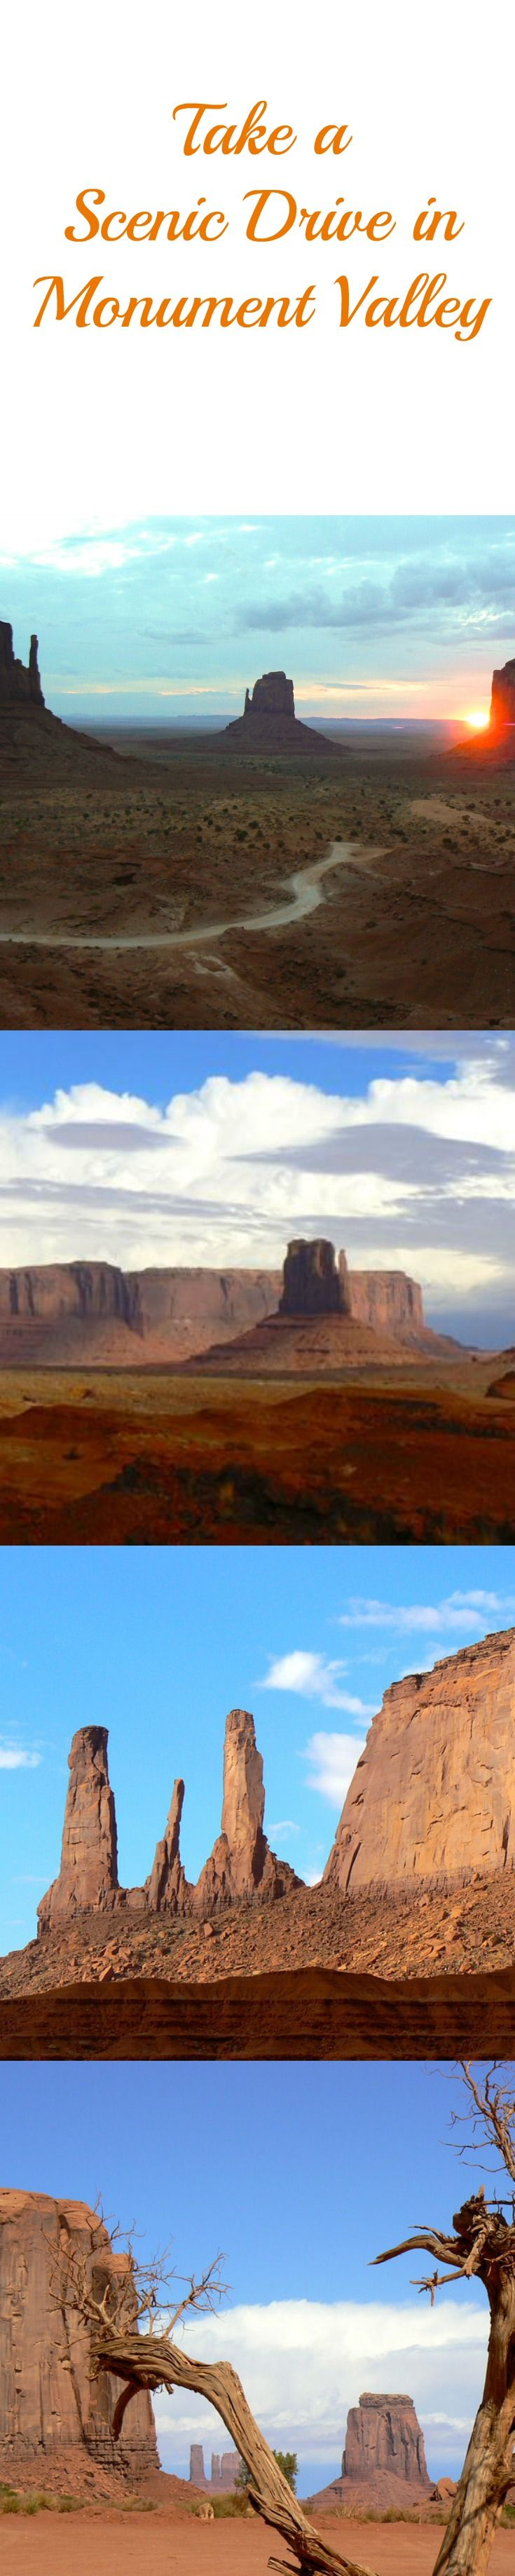 Take a scenic drive in Monument Valley. We show you exactly what to expect when you travel to this corner of Arizona and Utah. And be sure to include Monument Valley in a Southwestern U.S. road trip.